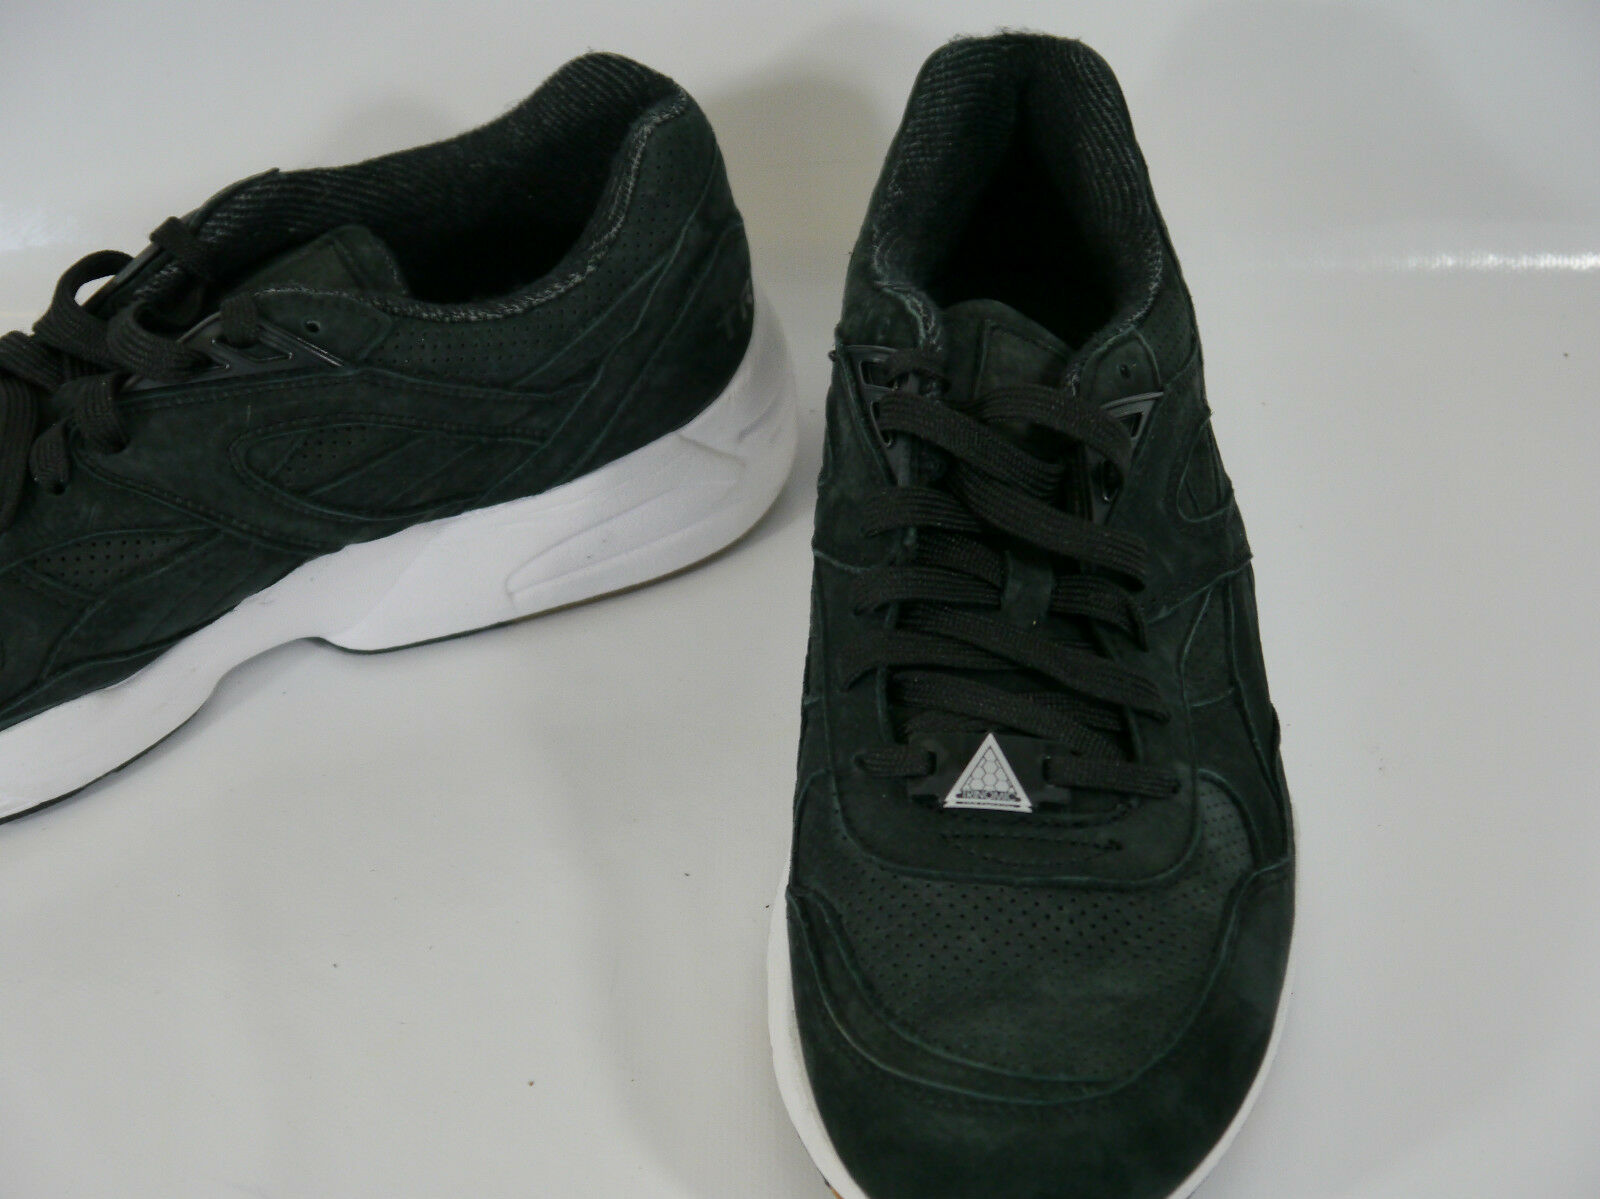 PUMA hommes PERFORATED noir LEATHER hommes PUMA TRAINERS 8 EUR 42 US 9 2cd501